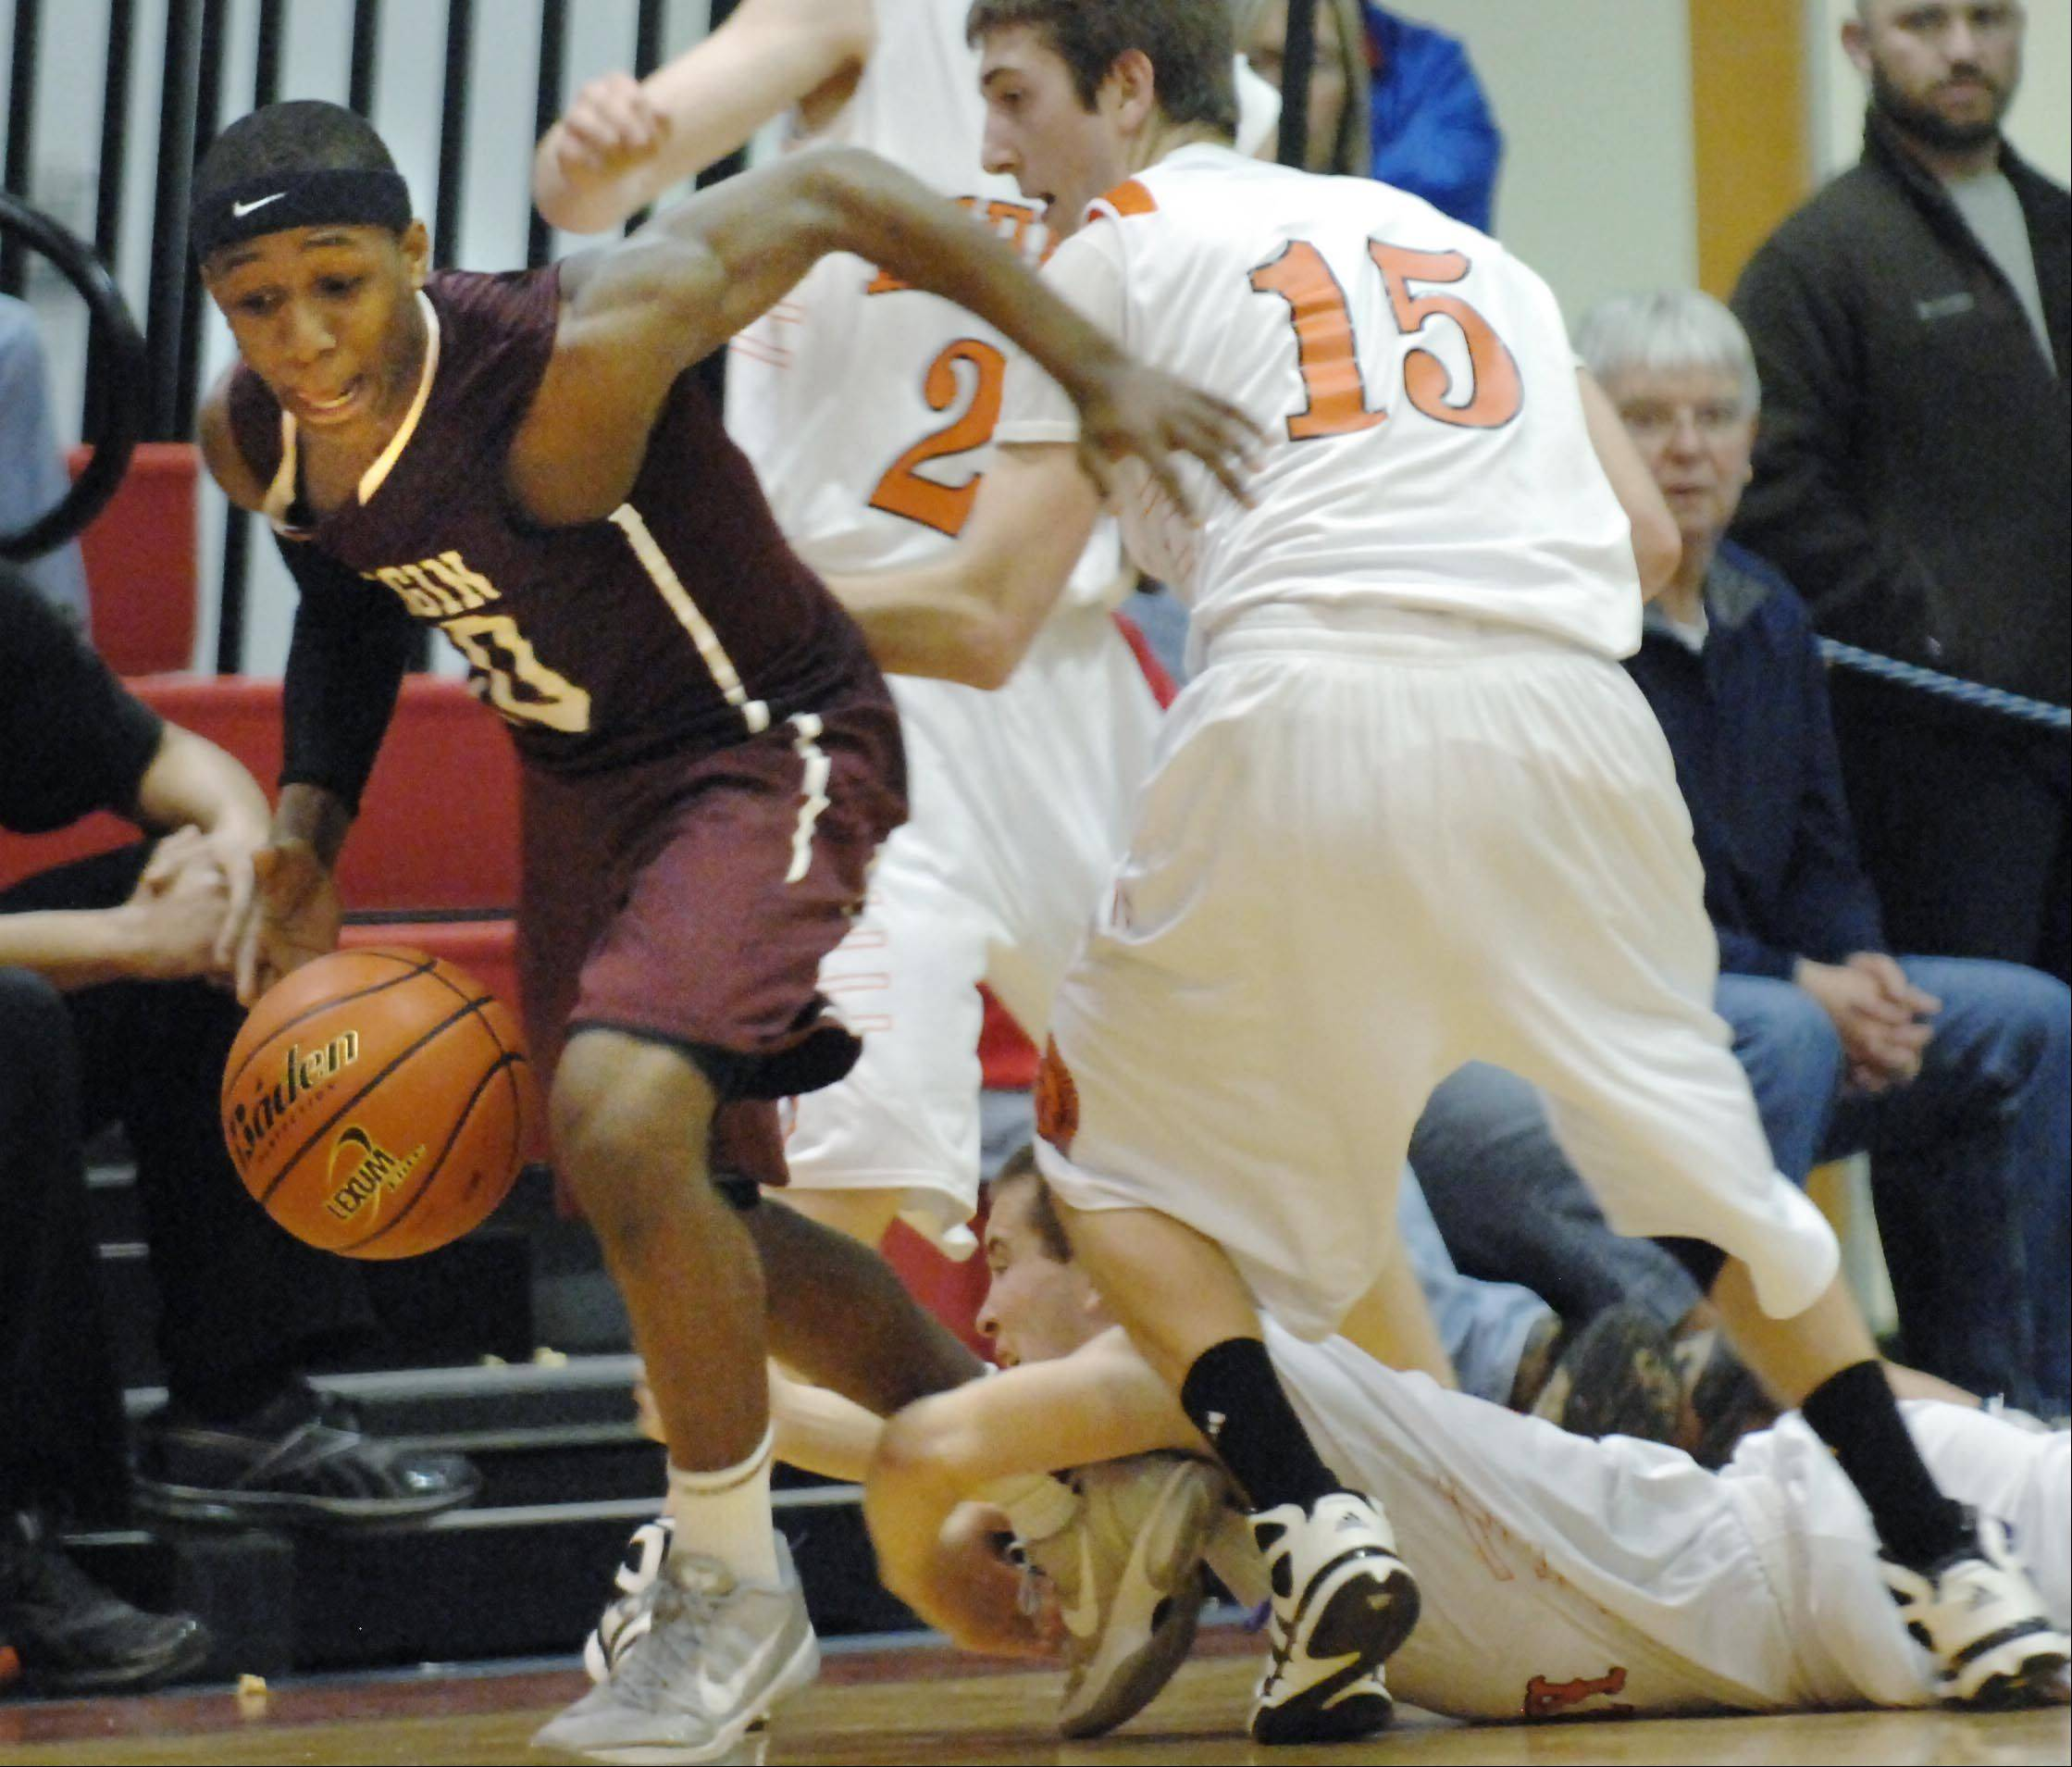 McHenry's Kyle Clark grabs the ankle of Elgin's Arie Williams as he splits the defense of McHenry's Jeff Nicholls and Danny Glick Wednesday in the Class 4A Dundee-Crown sectional semifinal game in Carpentersville. A foul was called on Clark.